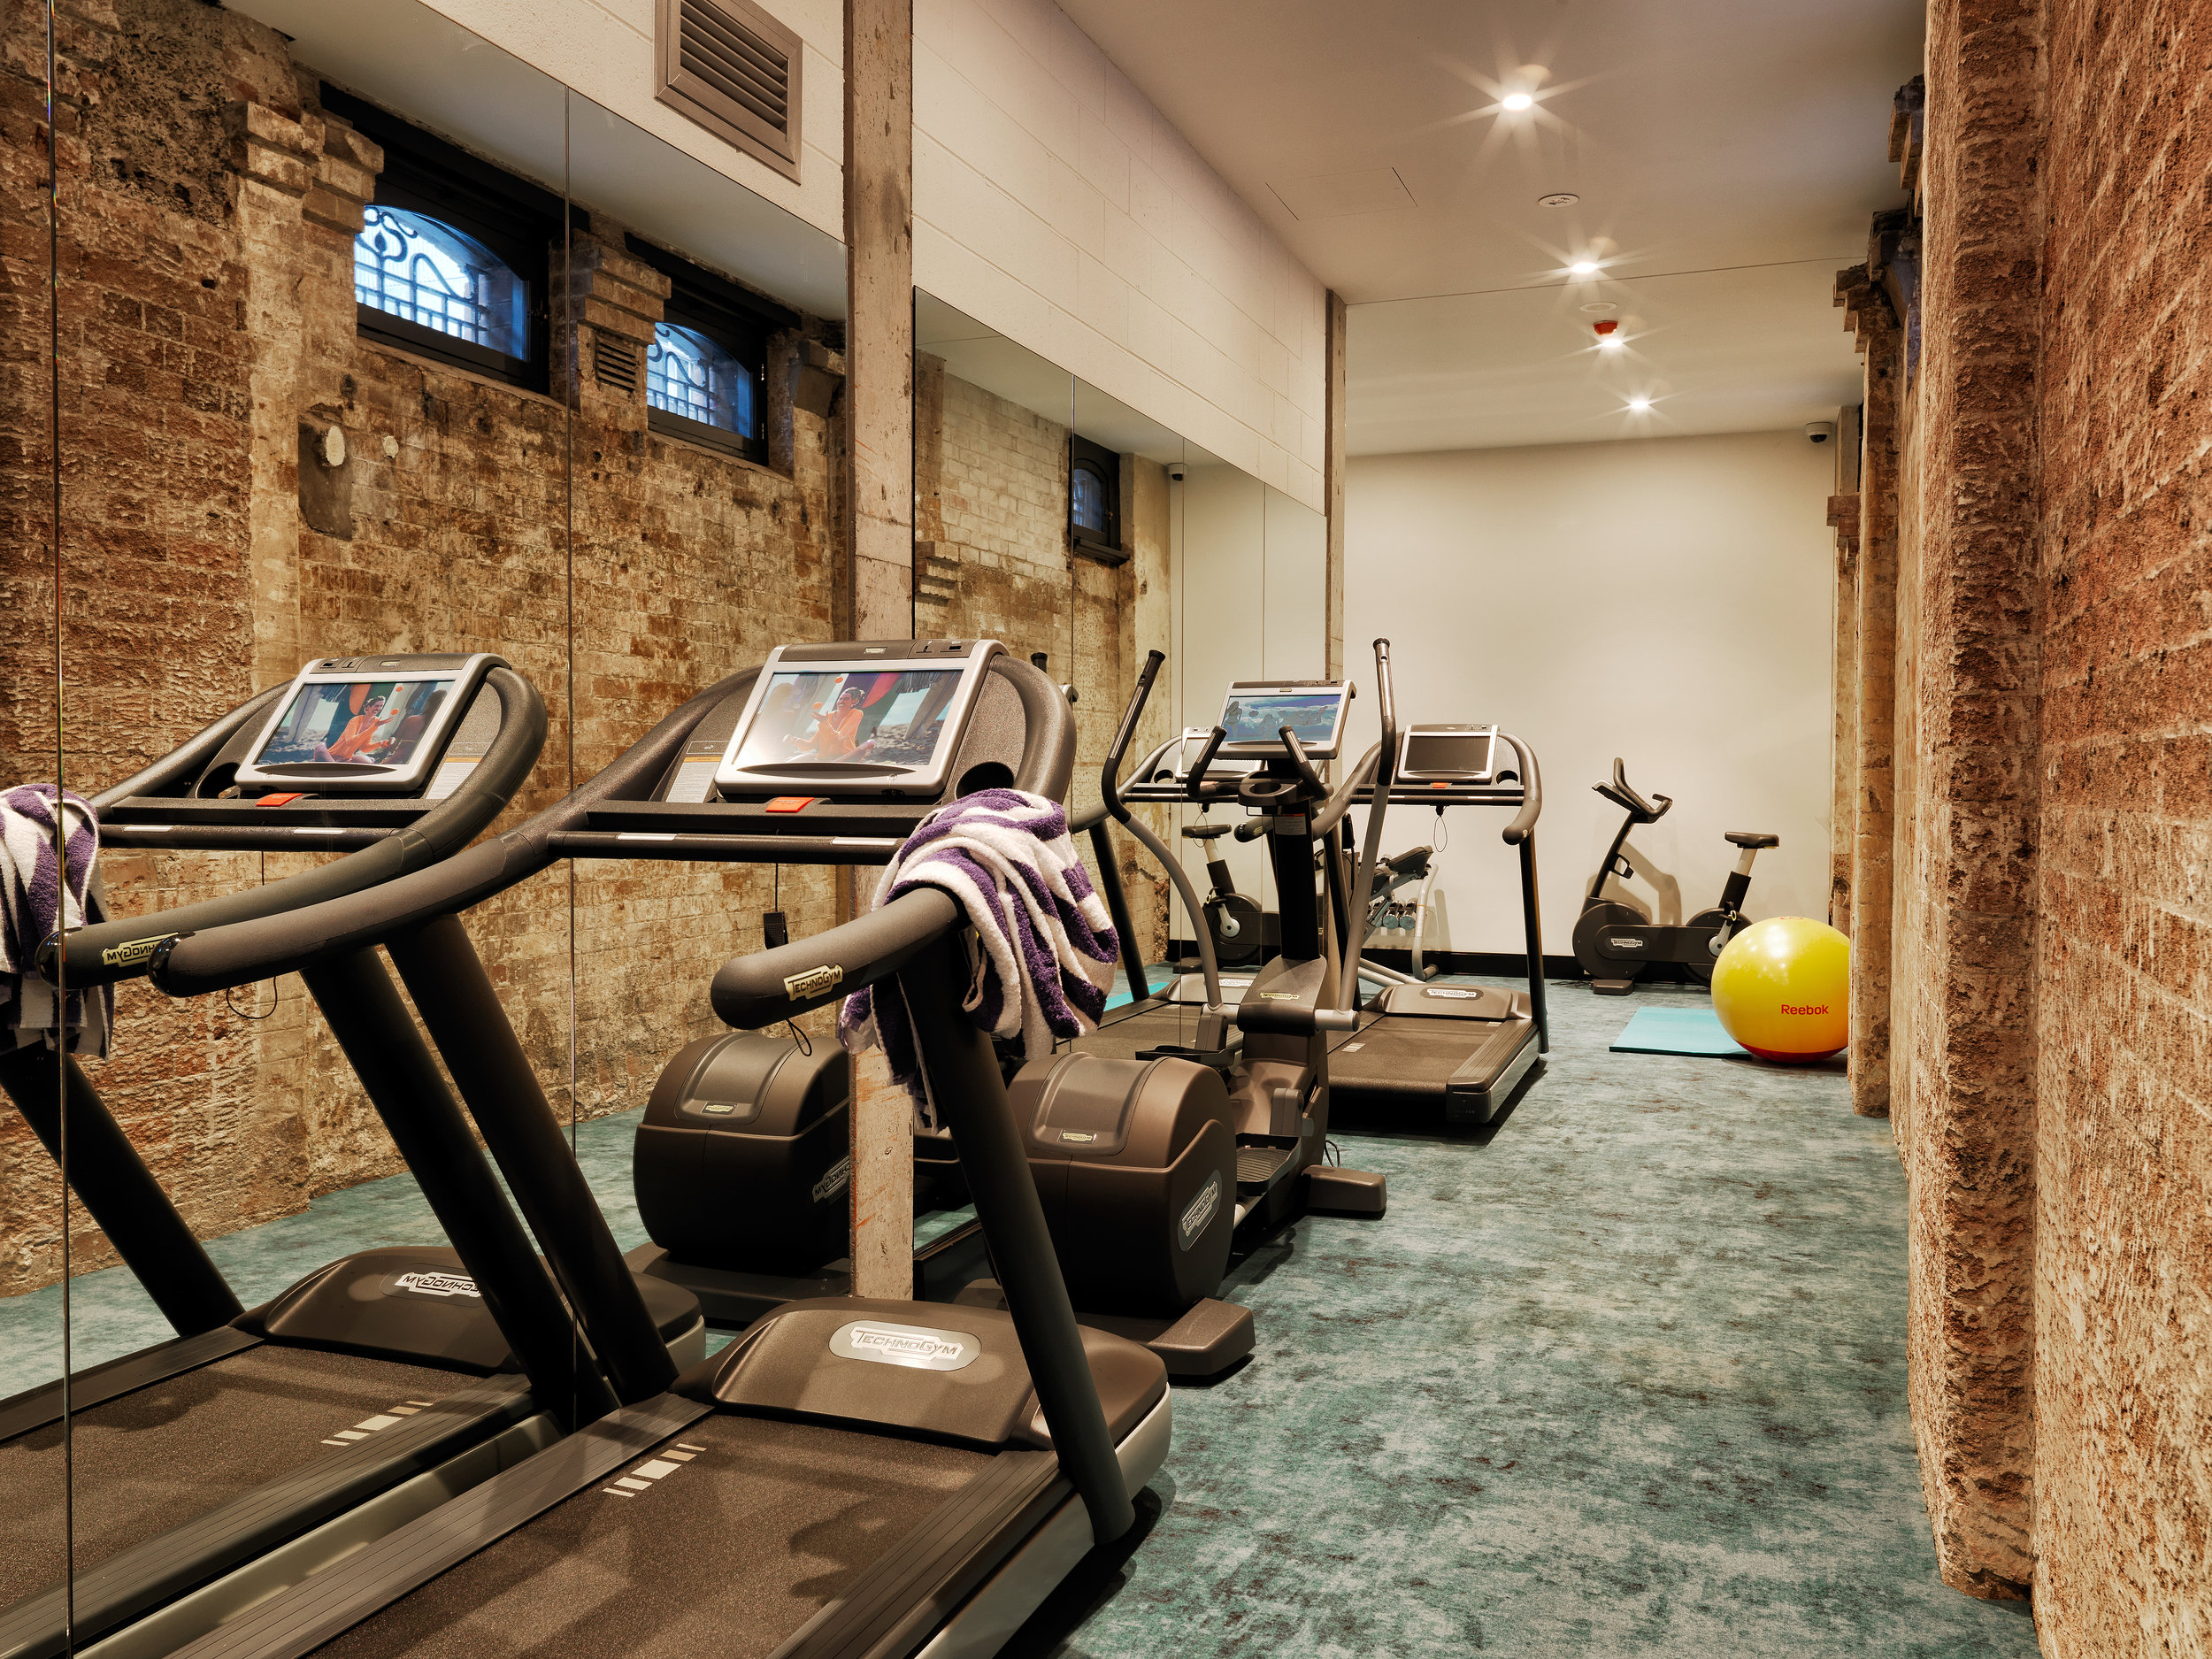 TOCH_Gym 1 copy.jpg